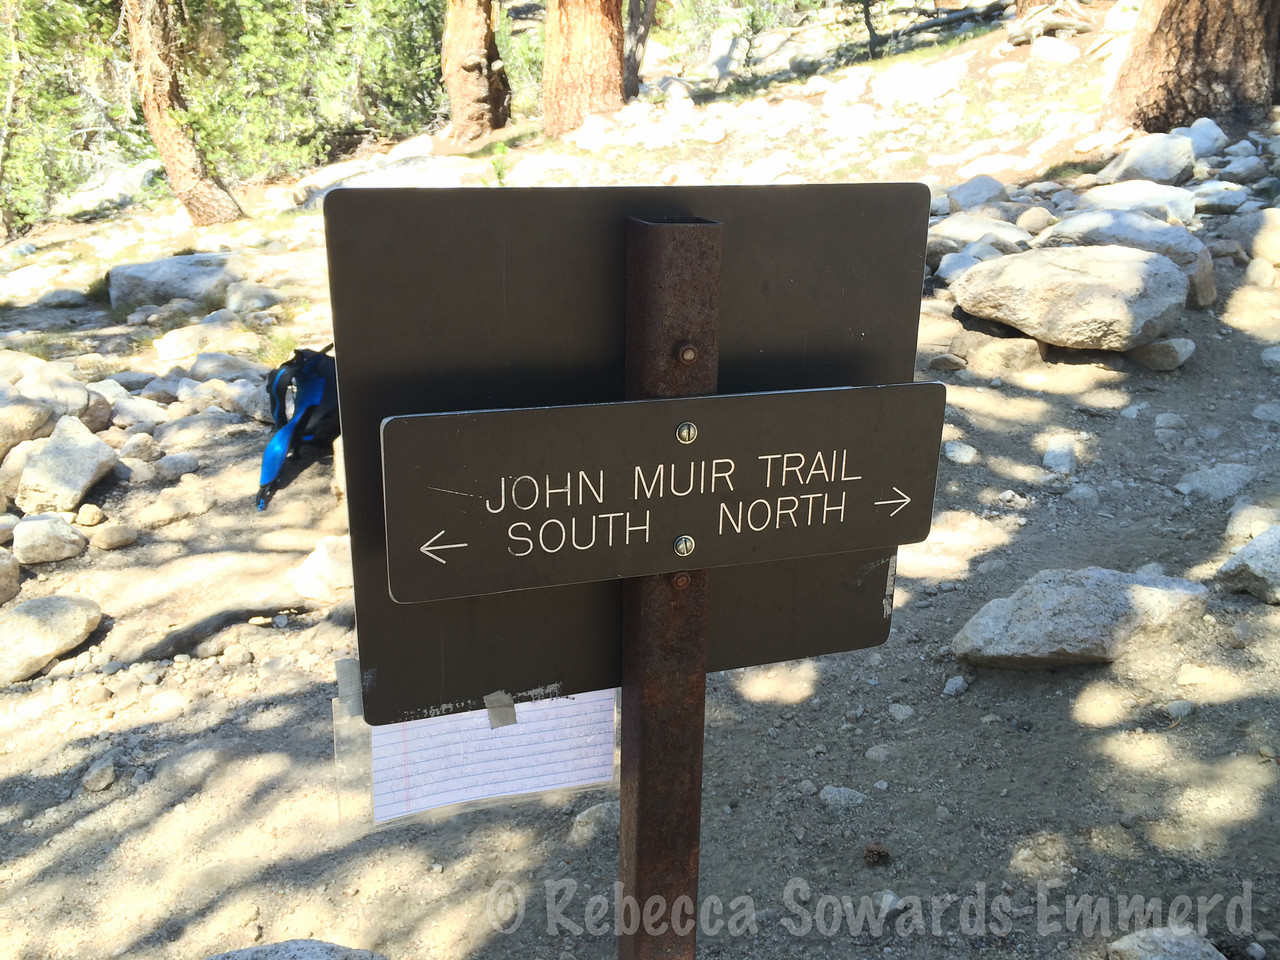 Back on the JMT again! I've hiked this small stretch so many times... we're heading south today.